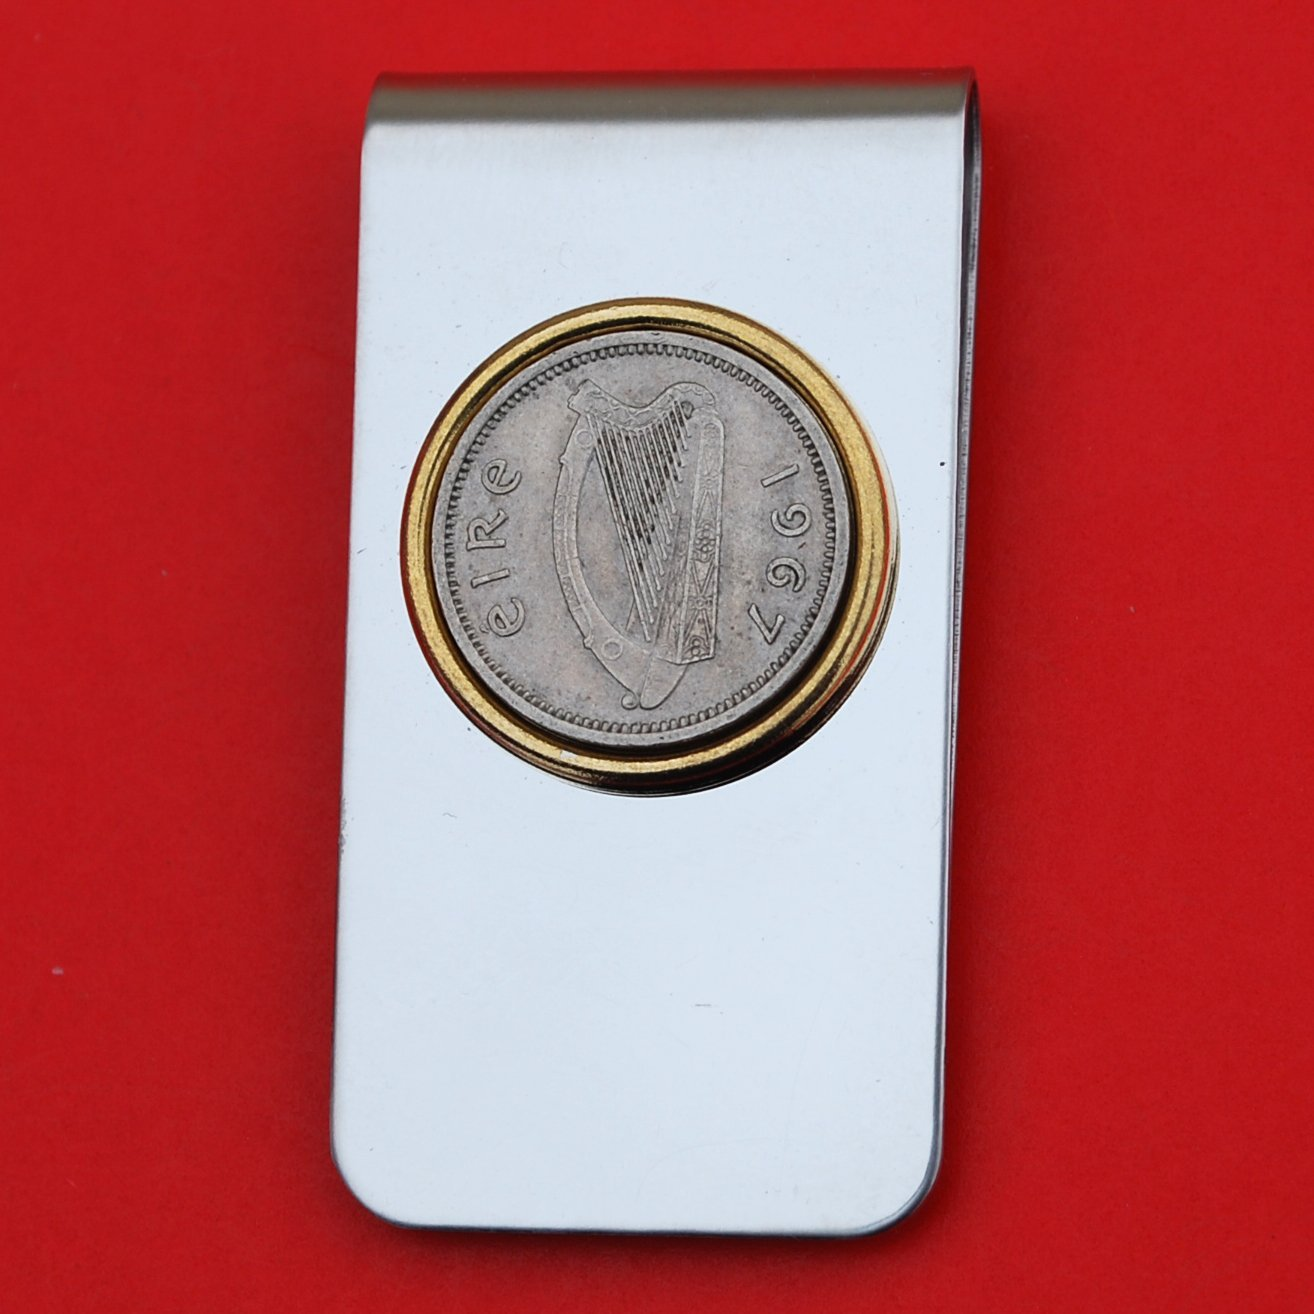 B01MZ6T8CK 1967 Irish Ireland 3 Pence Harp Coin Gold Silver Two Toned Stainless Steel Money Clip New 71Q2Bqikq6-L